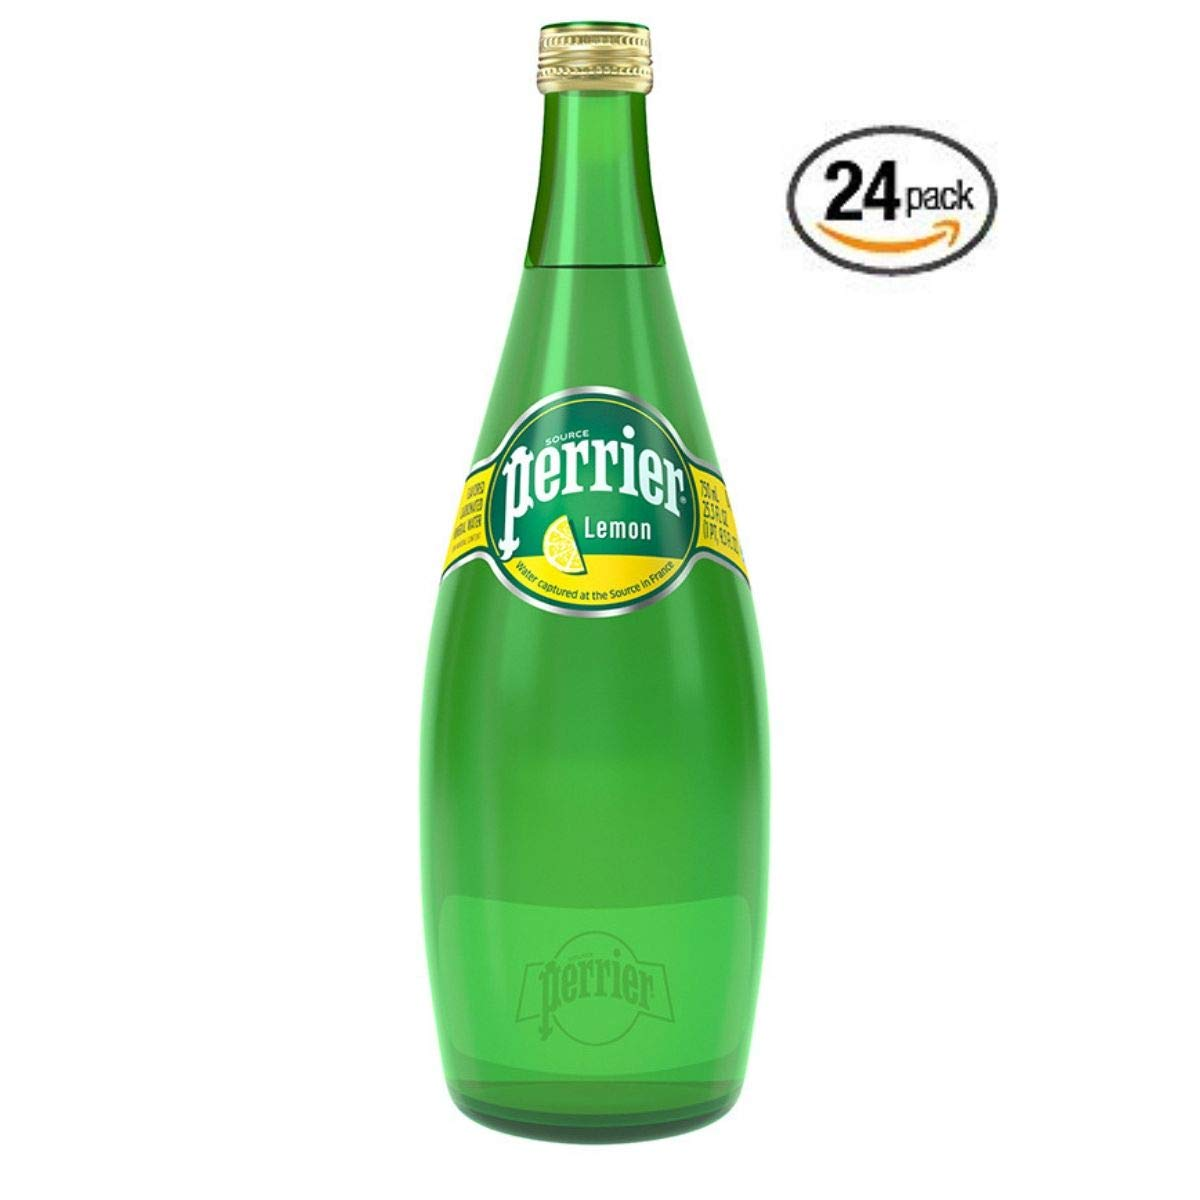 Perrier Lemon Flavored Carbonated Mineral Water, 25.3 fl oz. Glass Bottle (24 Count)